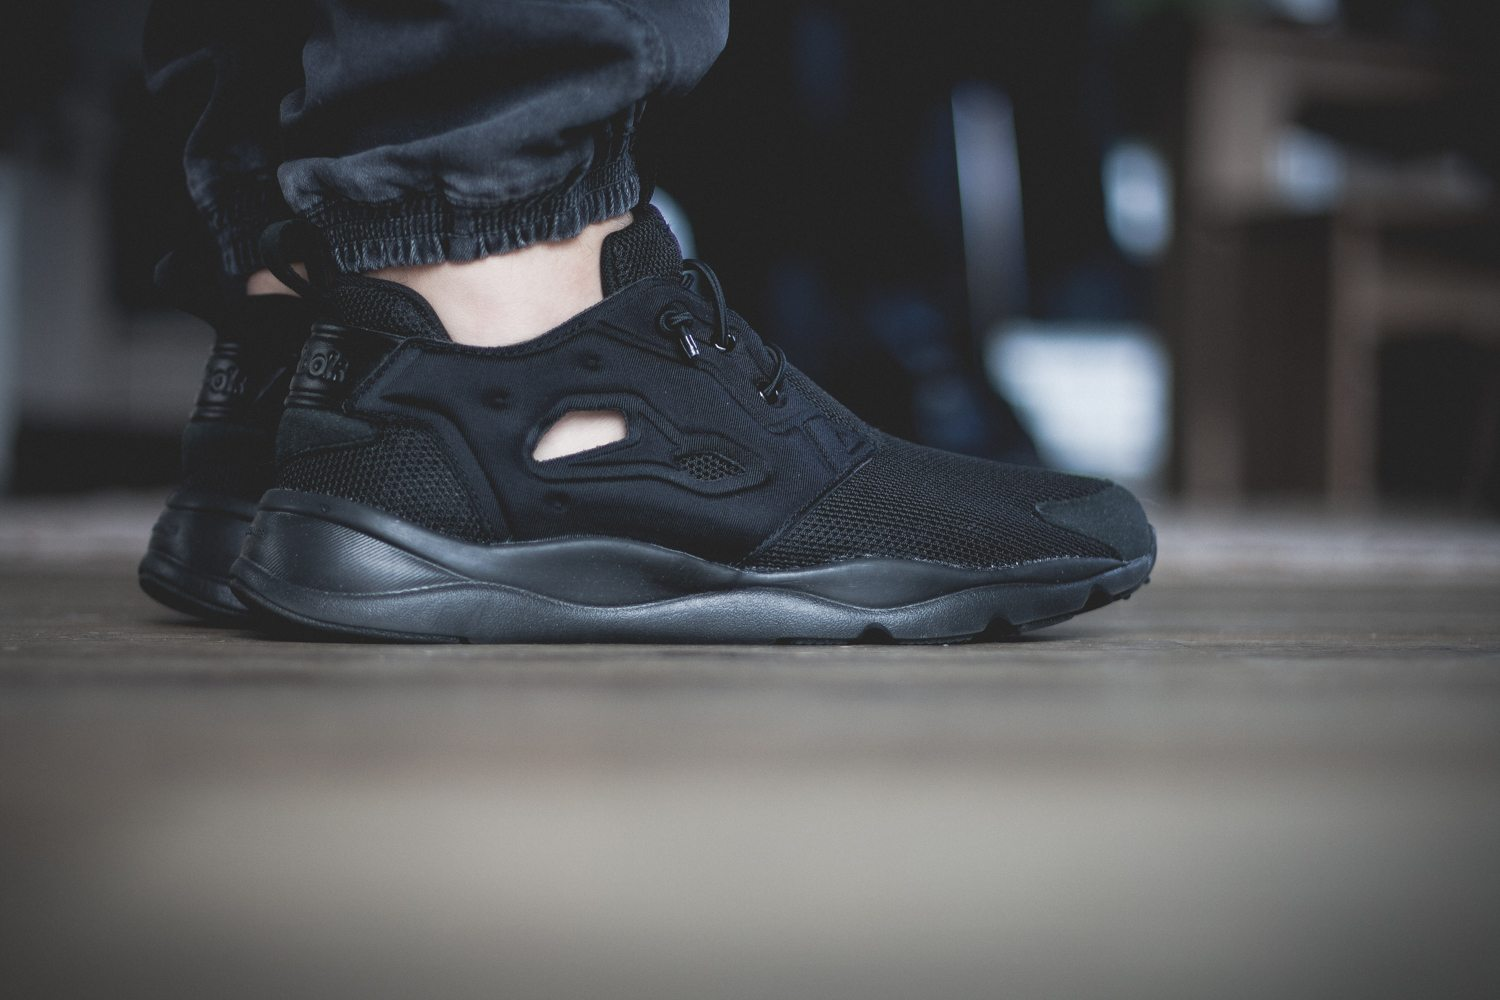 Reebok Classic Fury Lite All Black 1